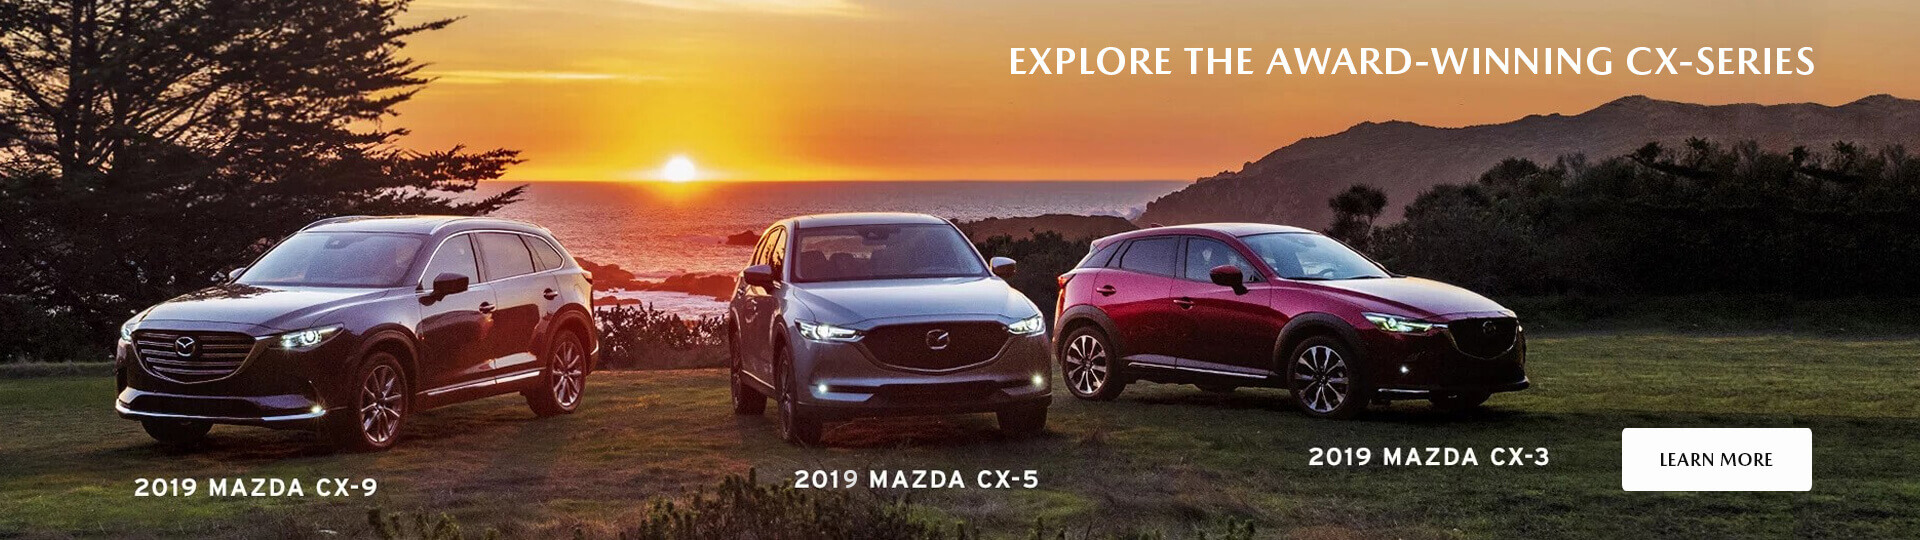 The award-winning 2019 Mazda CX-9, Mazda CX-5 and Mazda CX-3. All the SUV in the CX-Series are engineered by artisans with a passion for driving and immaculate attention to detail.